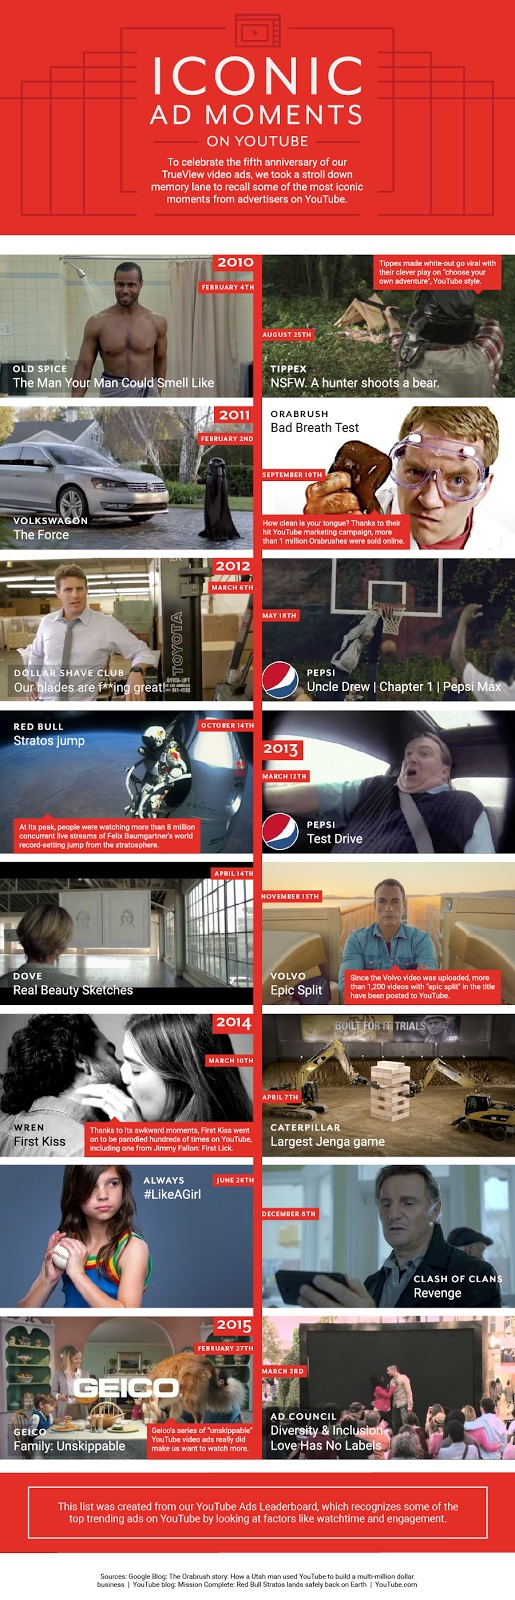 YouTube-TrueView-Ads-Anniversary-Ad-Moments